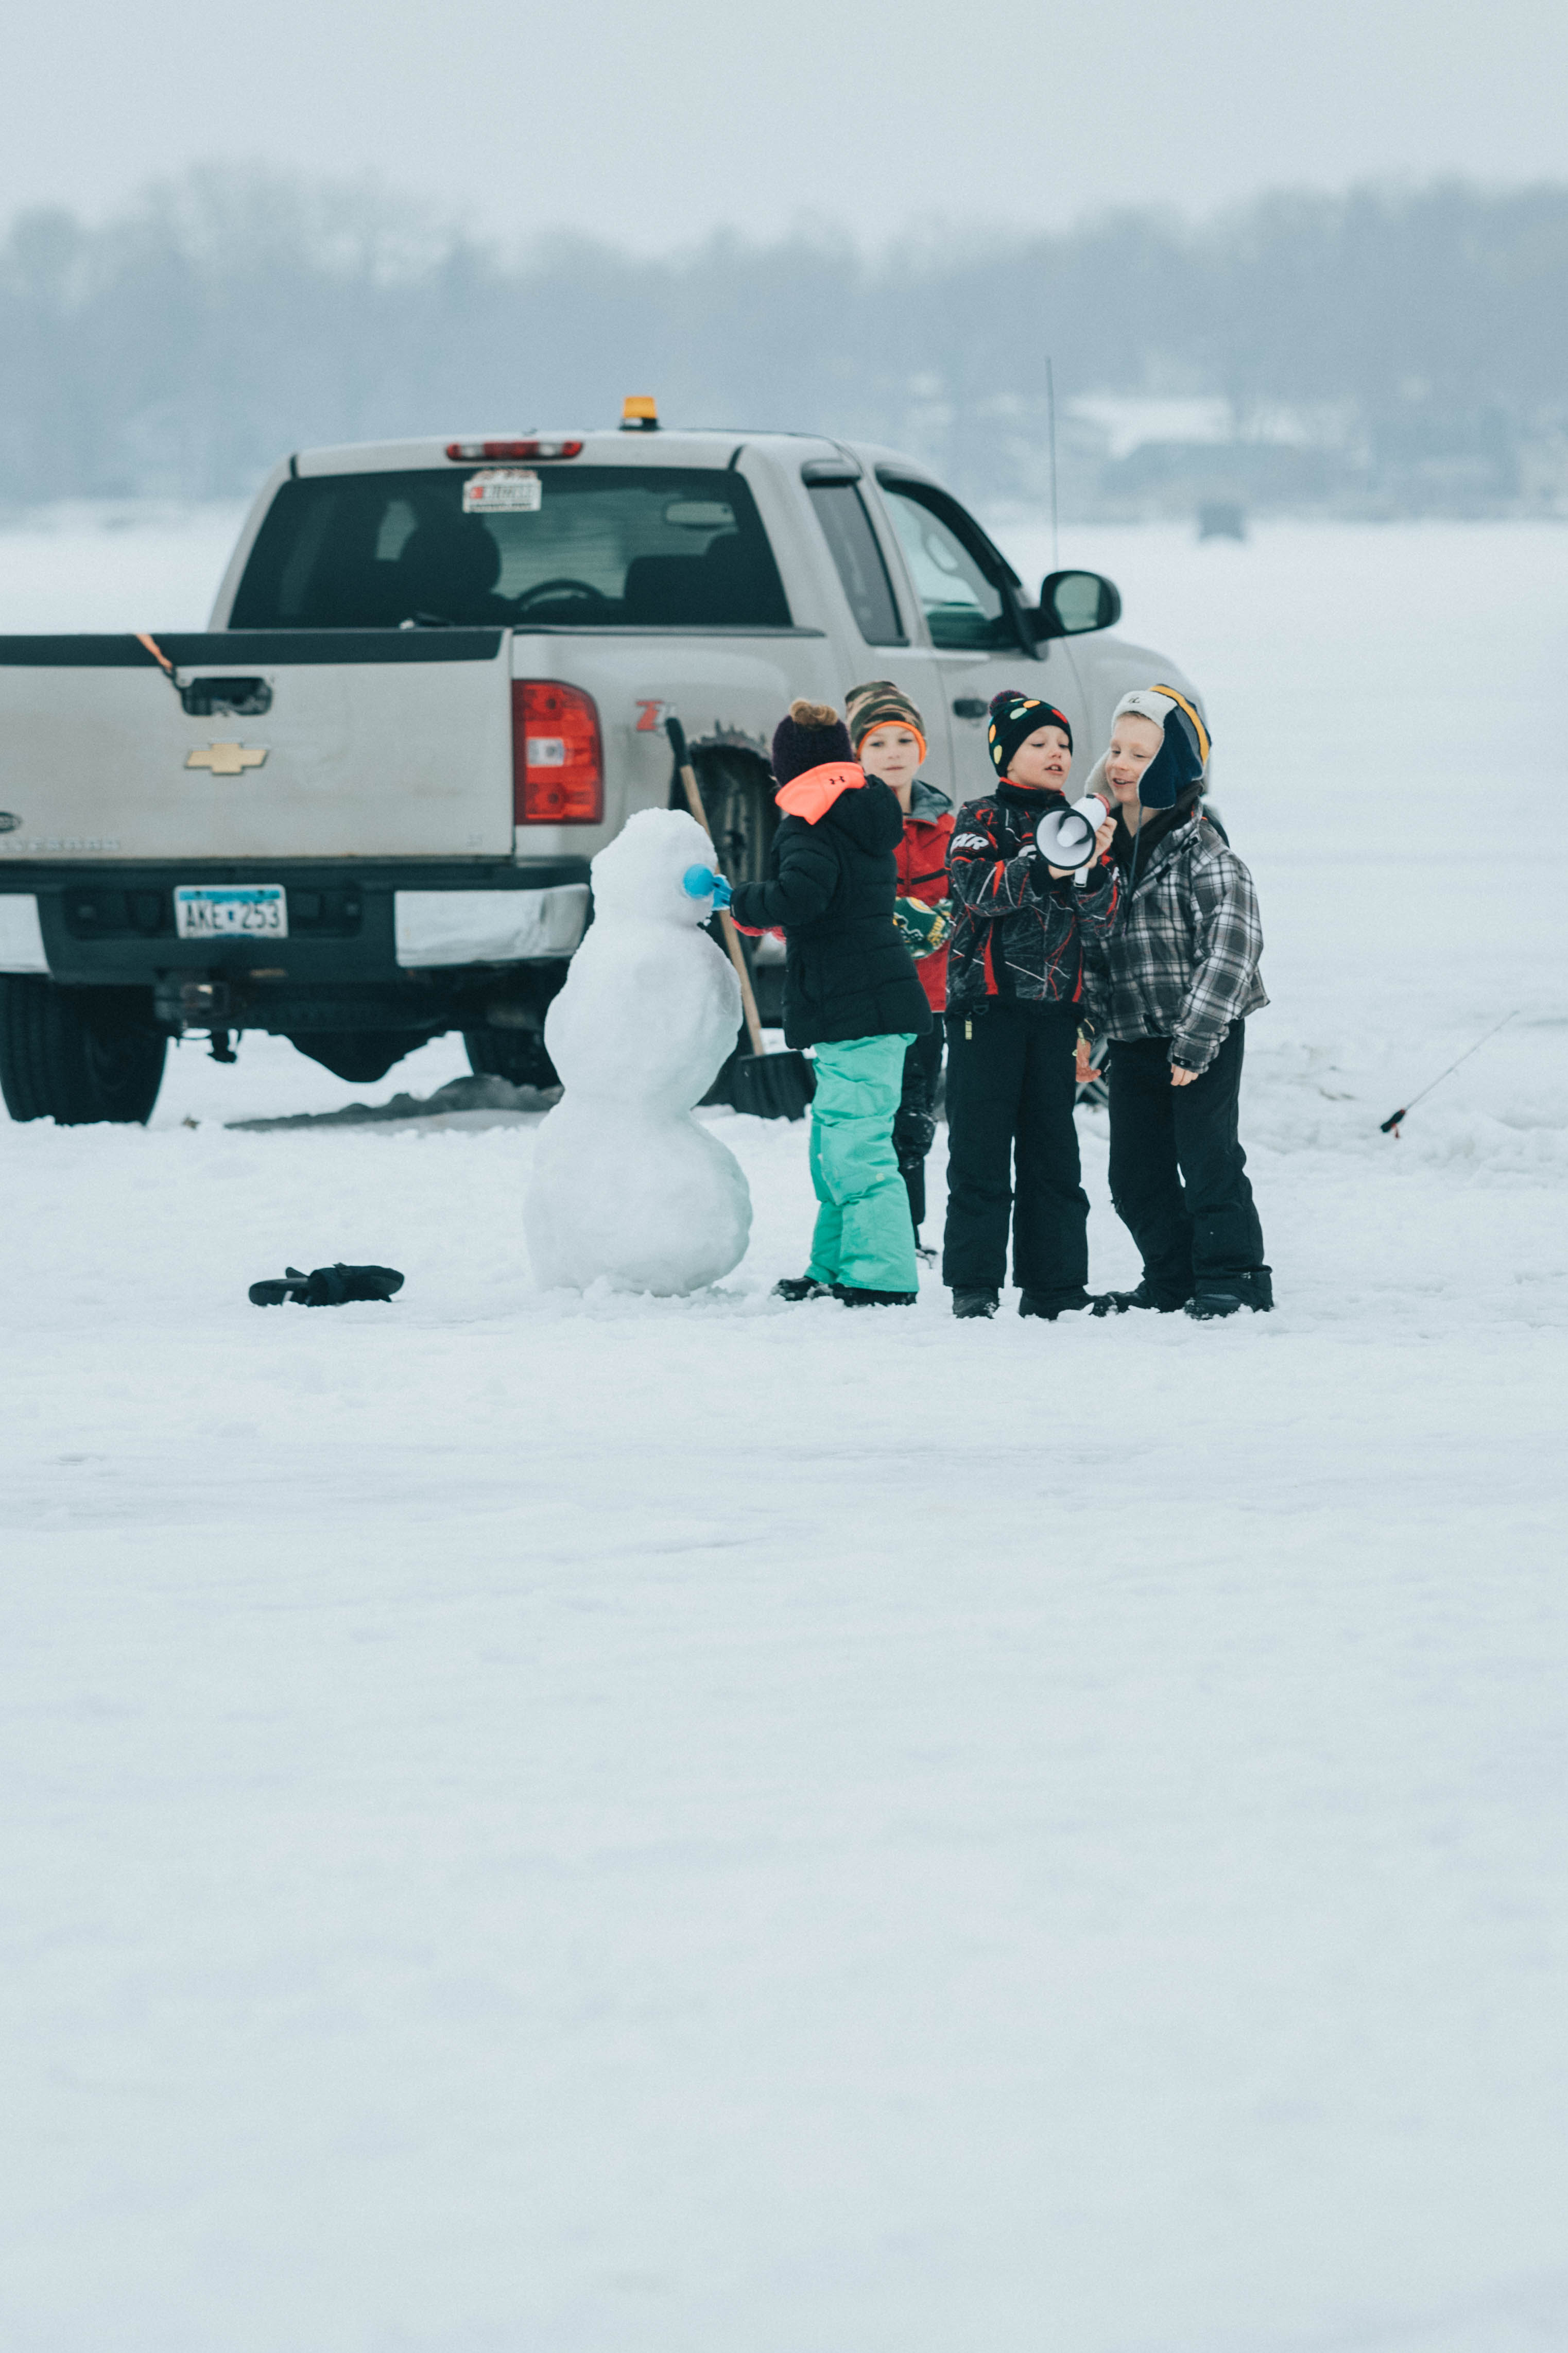 SPRING LAKE ICE FISHING CONTEST/SHOP PARTY EXTRAVAGANZA